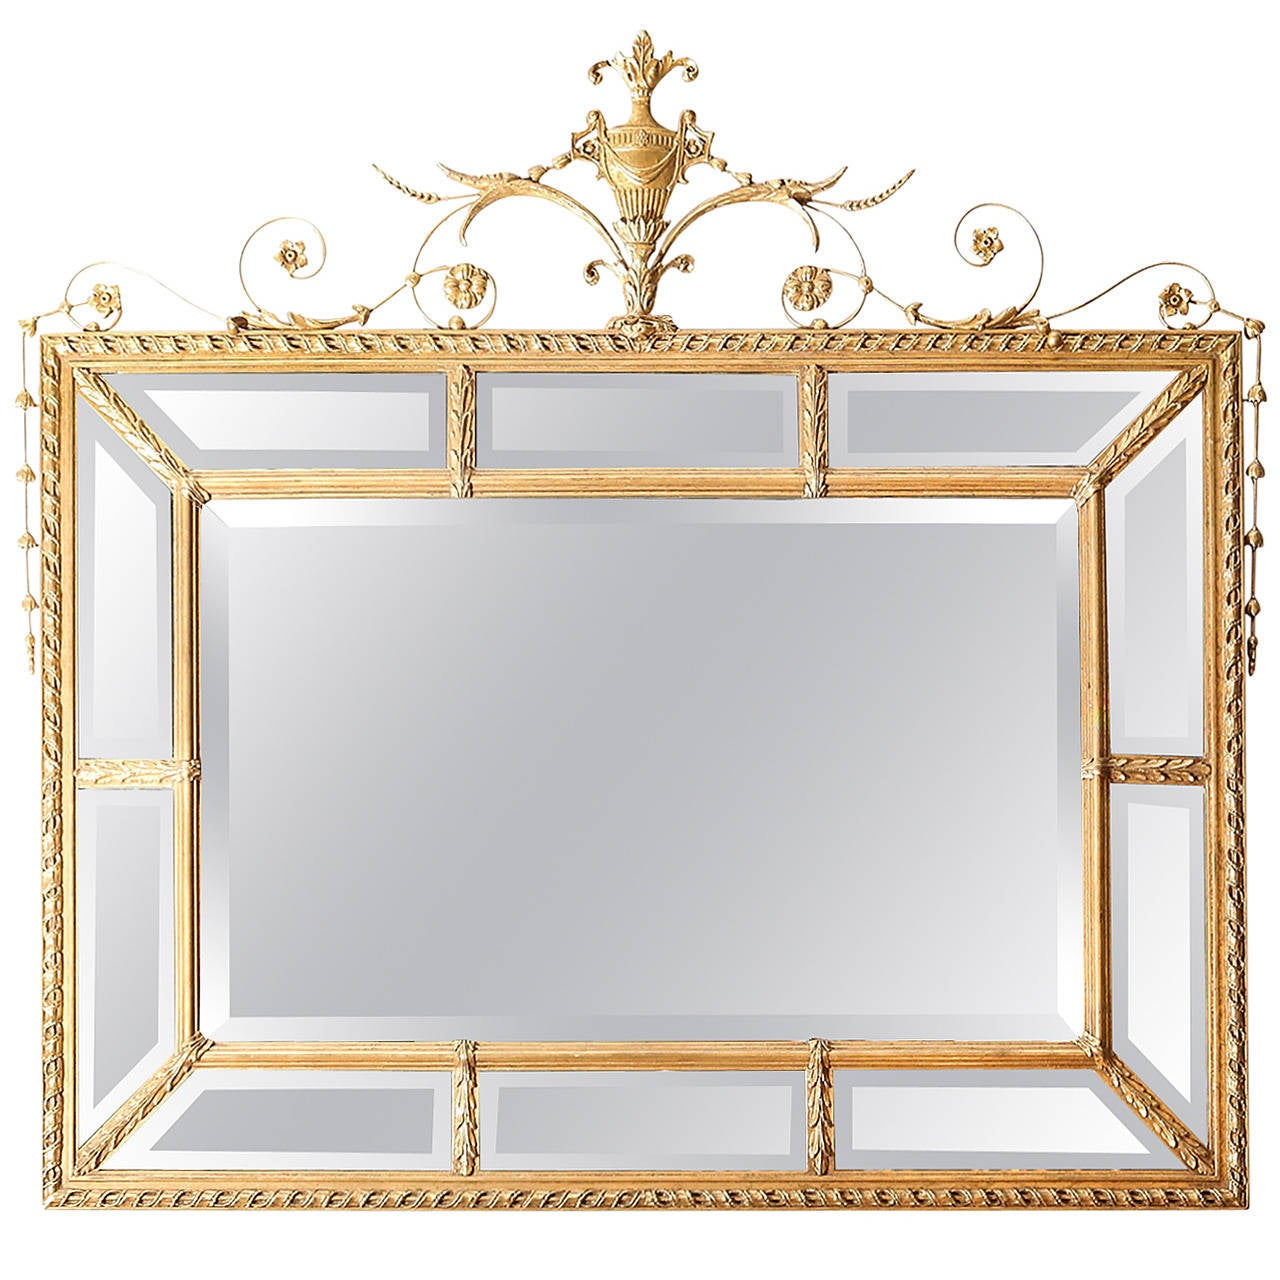 Vintage adam style mirror with beveled panels at 1stdibs for Vintage style mirrors